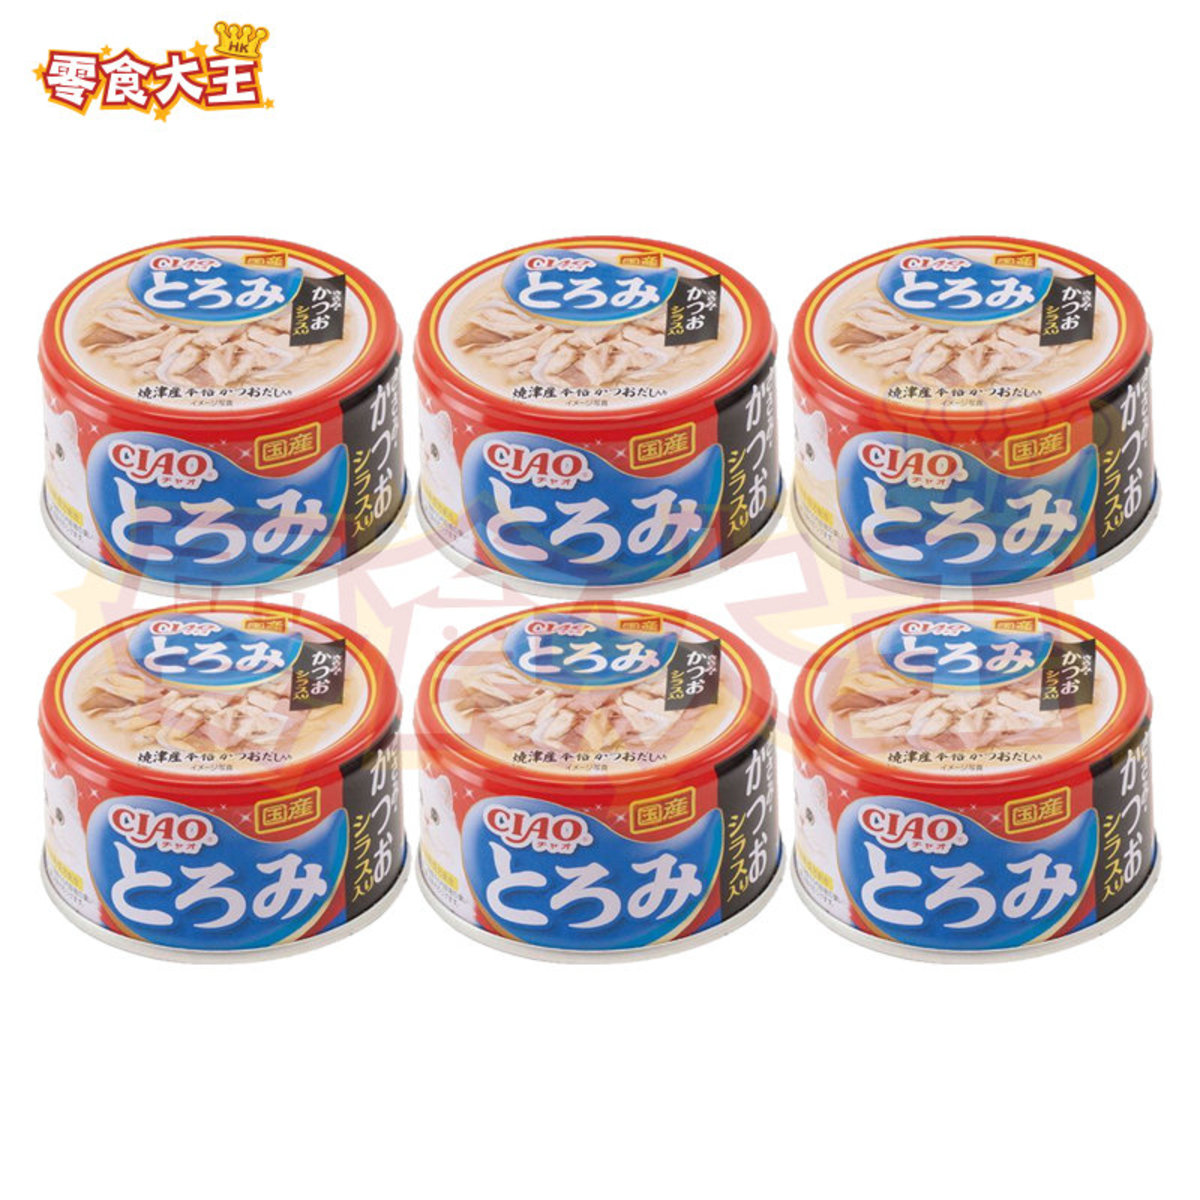 Chicken Breast & Squid & White Fish  Canned Cat Food - A-45  80g x 6 cans (4901133061790_6)